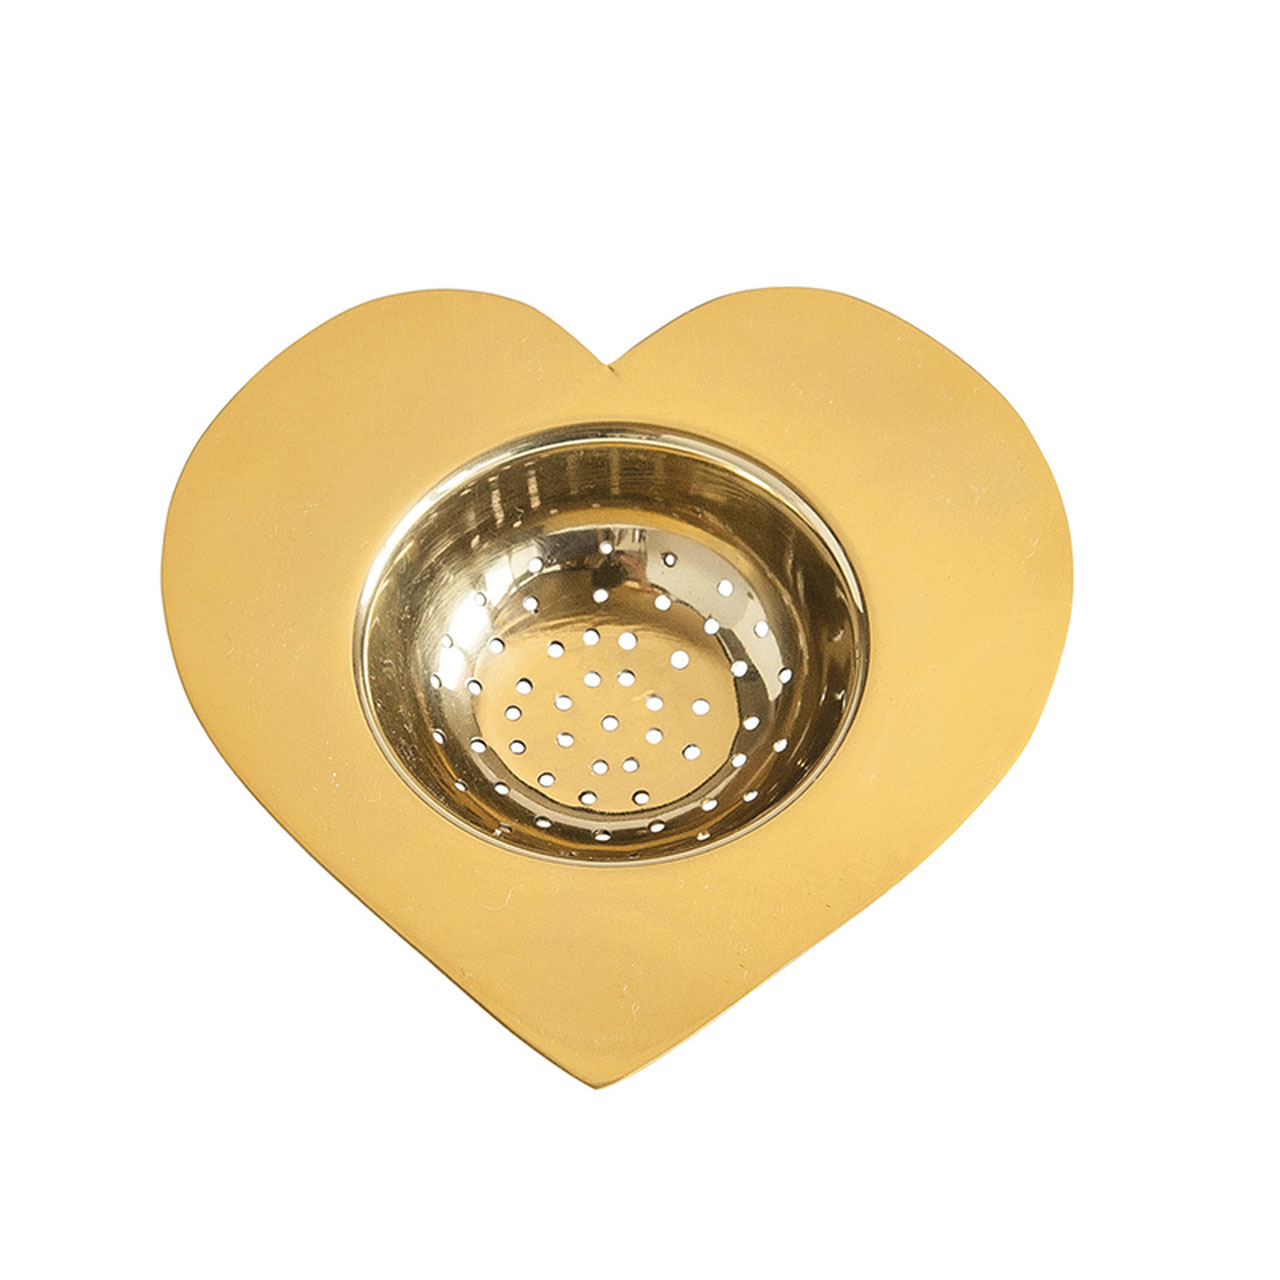 Mother's Day gifts - Brass Heart Tea Strainer